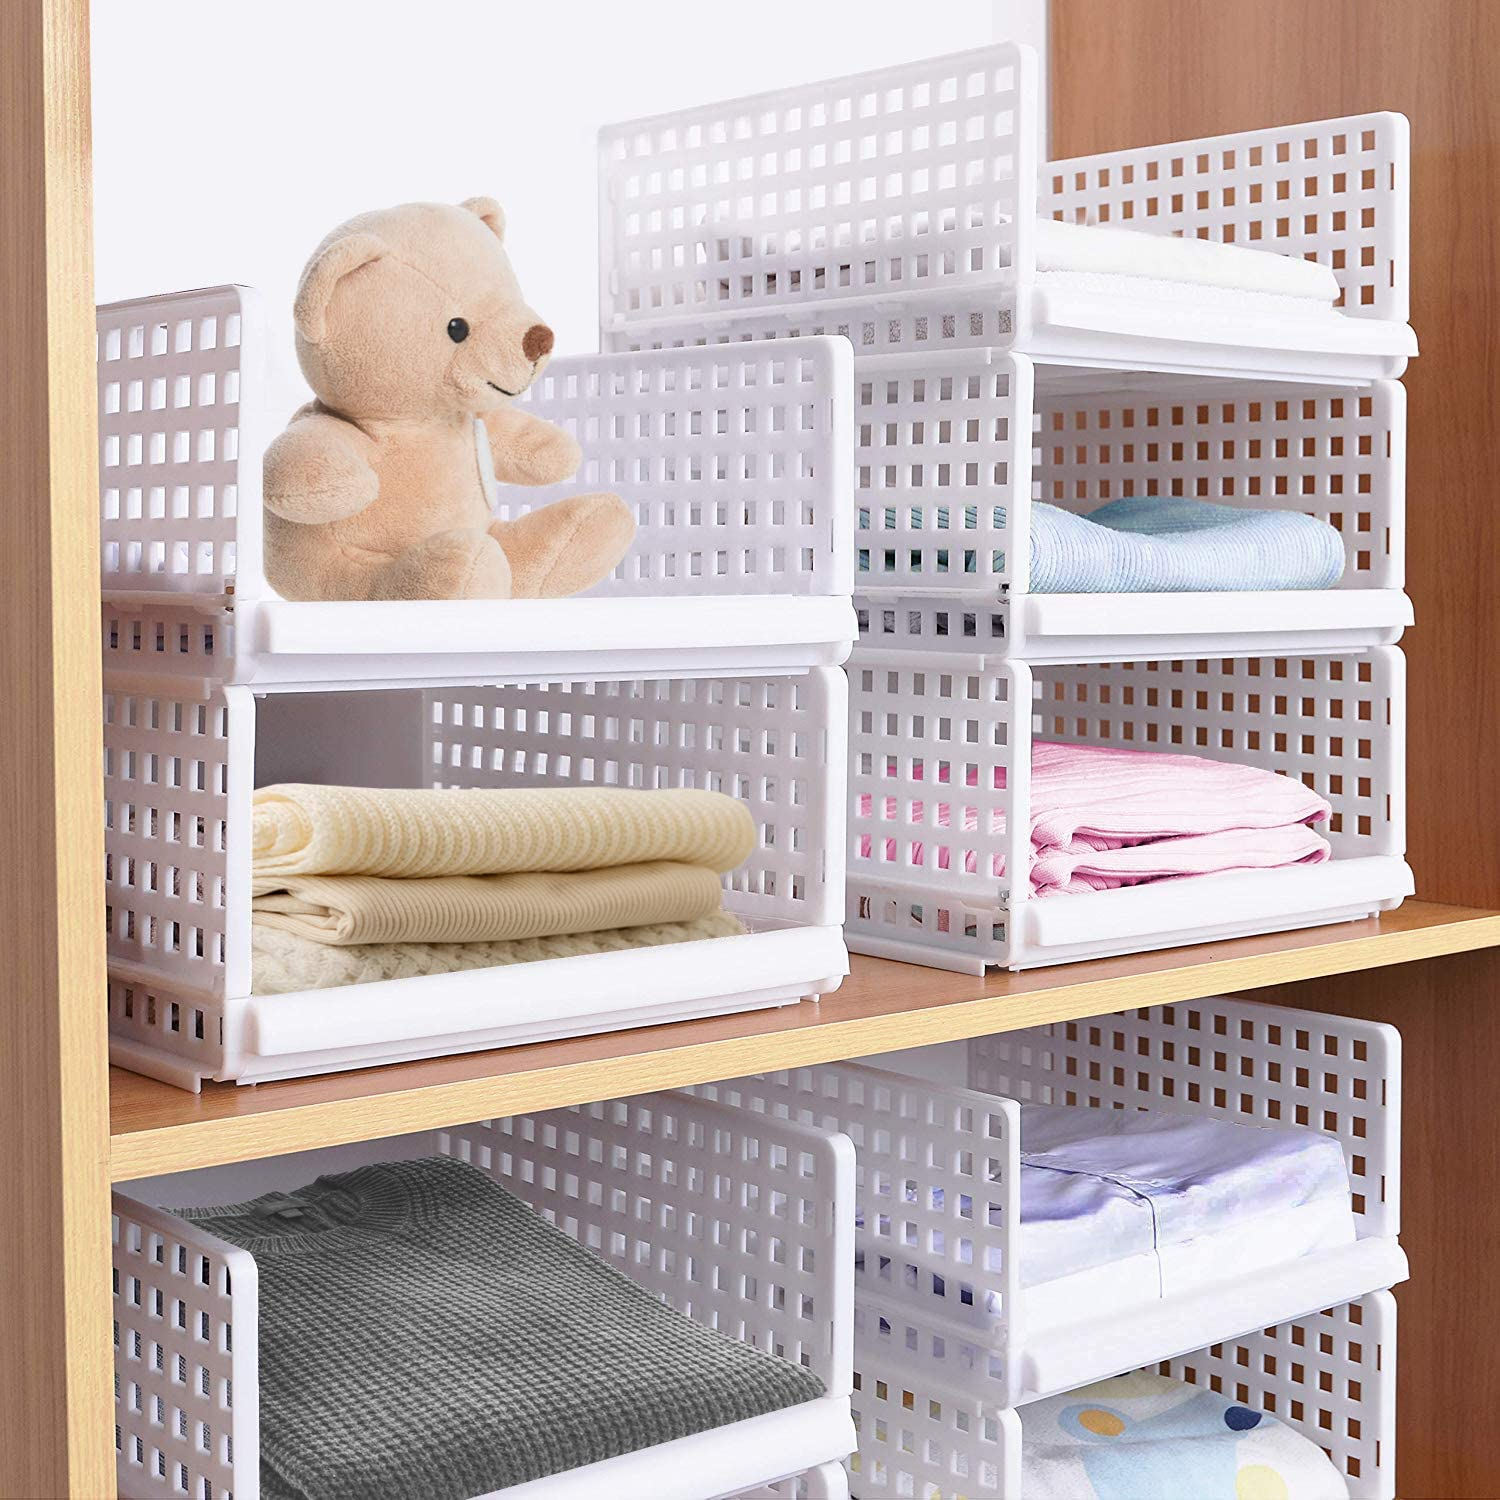 Set of 4 Stackable Wardrobe Storage Box Organizer, Plastic White Wardrobe Shelves Closet Organiser Box, Pull Out Like a Drawer, Suitable for Home, Bedroom, Kitchen